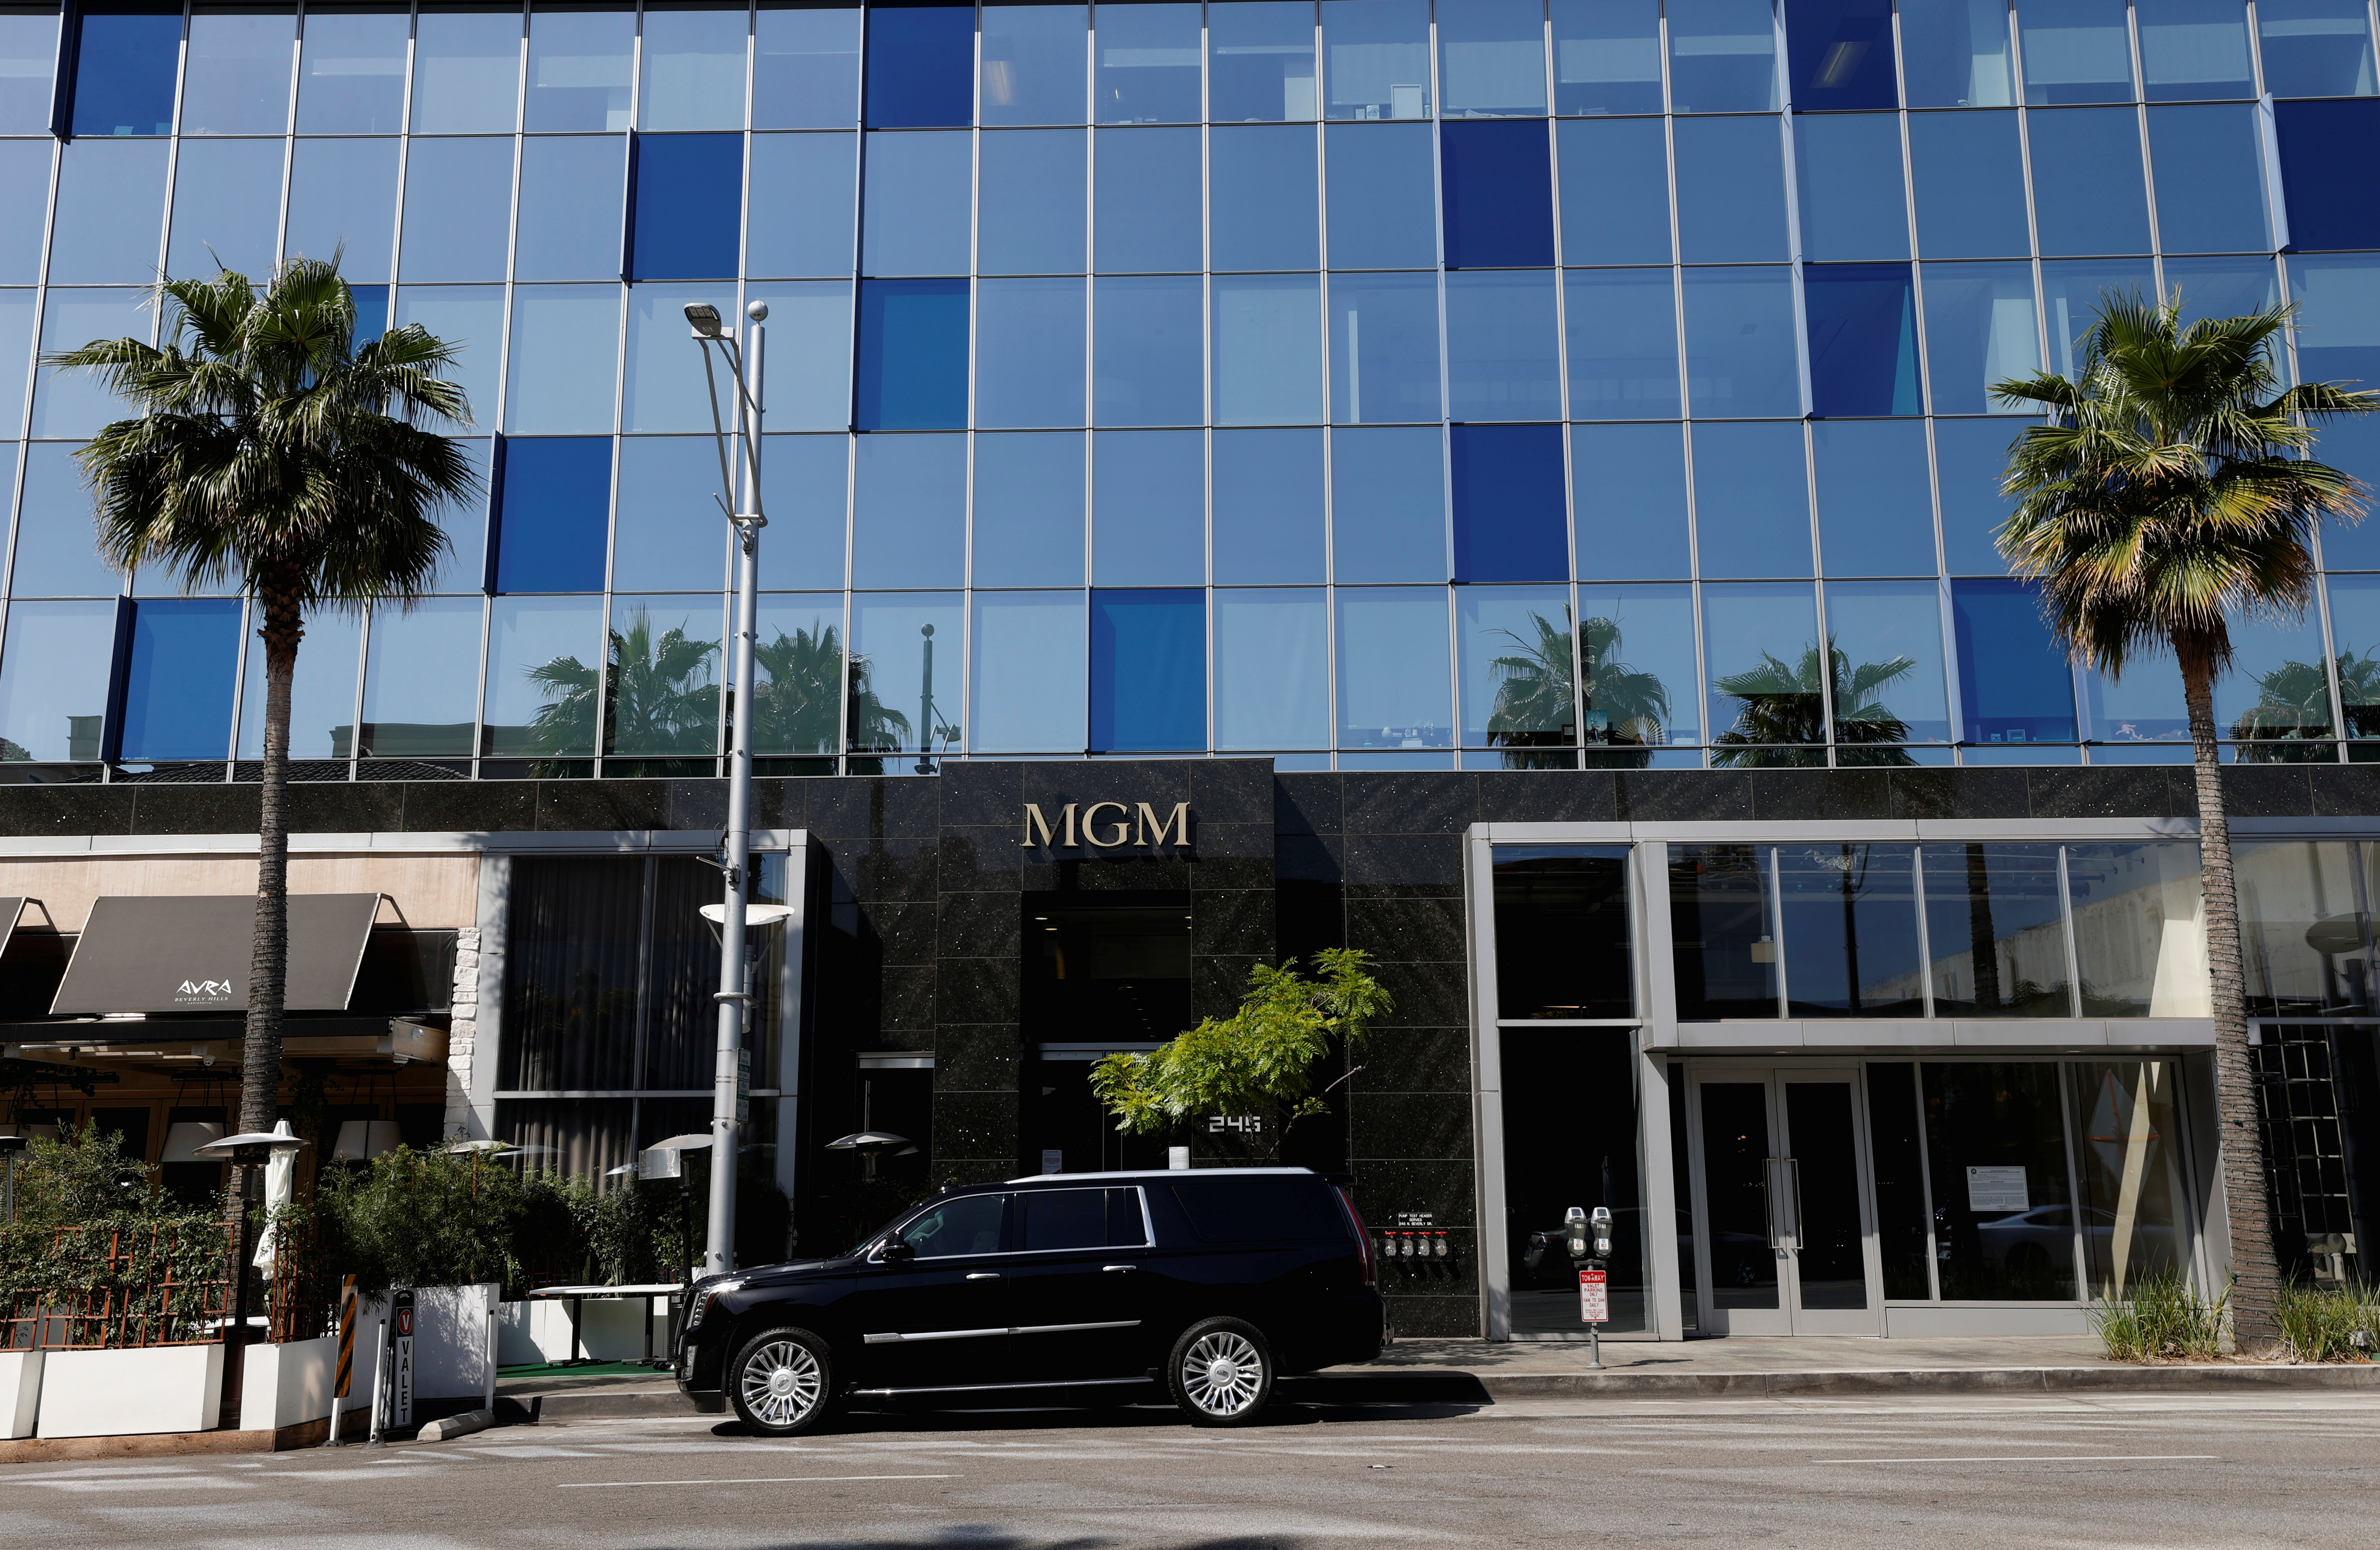 A general view shows the offices of MGM Studios in Beverly Hills, California, U.S., May 26, 2021. REUTERS/Mario Anzuoni